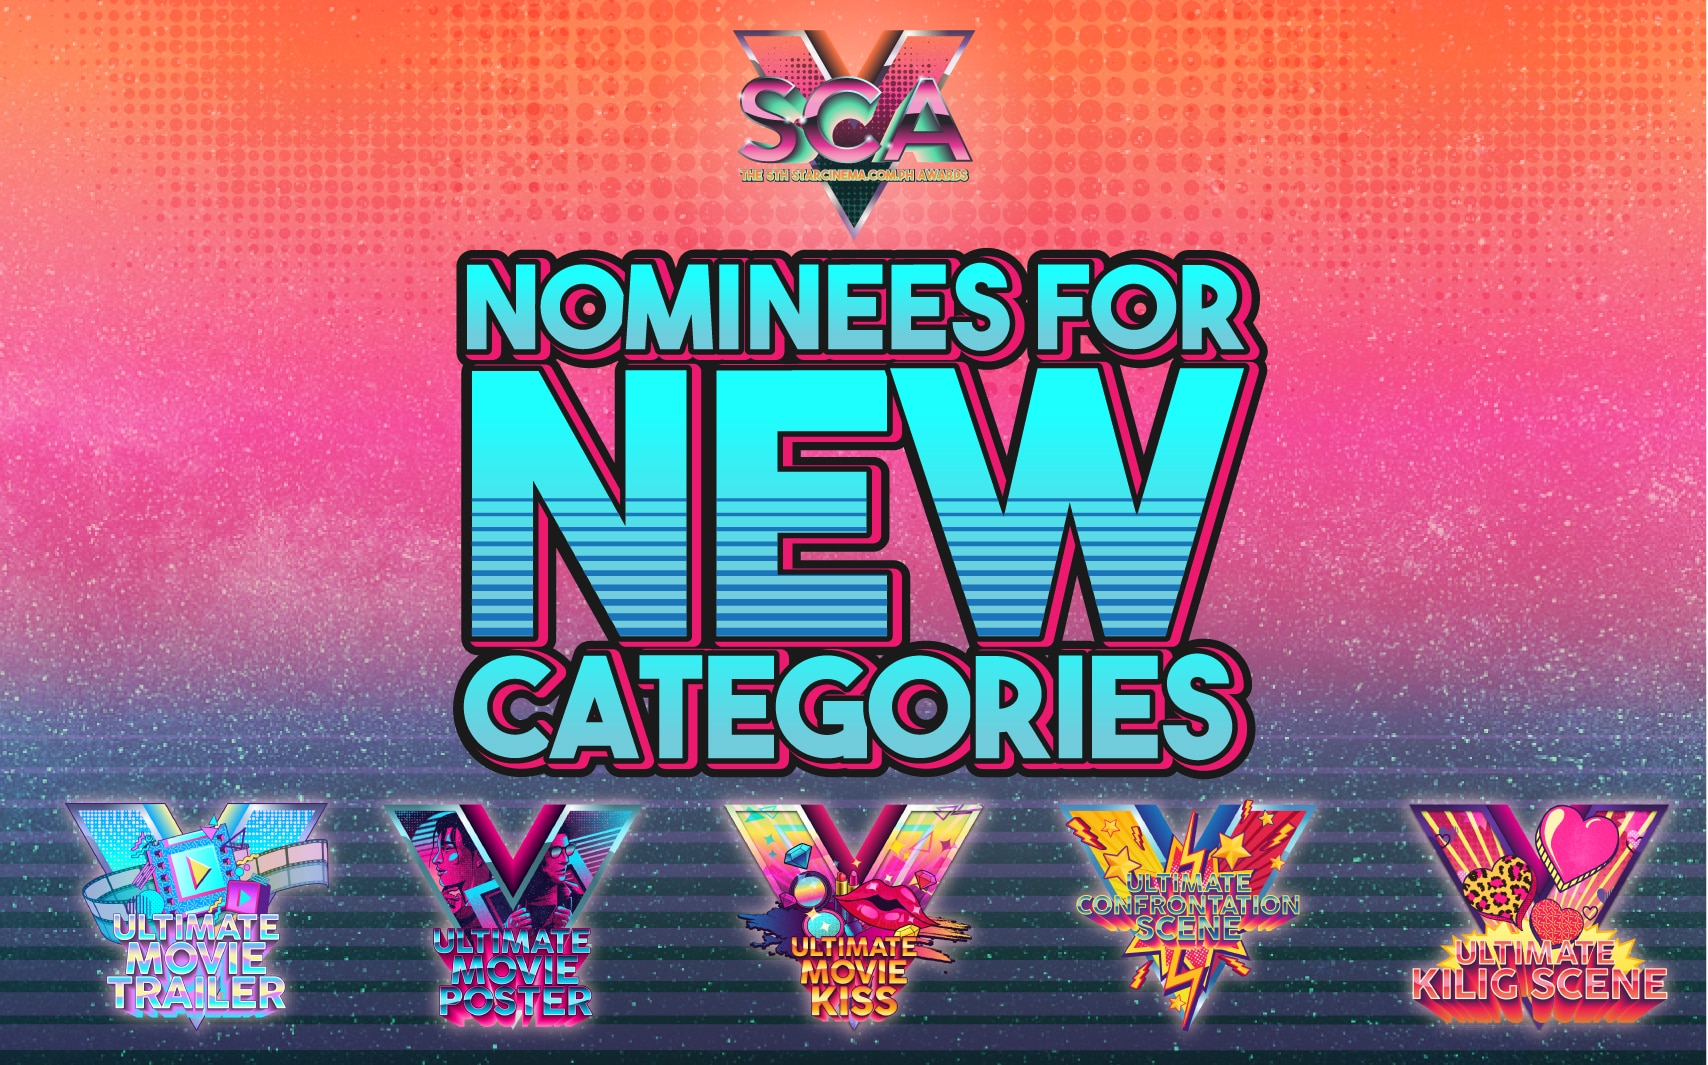 #SCA5: Voting for the New Categories are now CLOSED